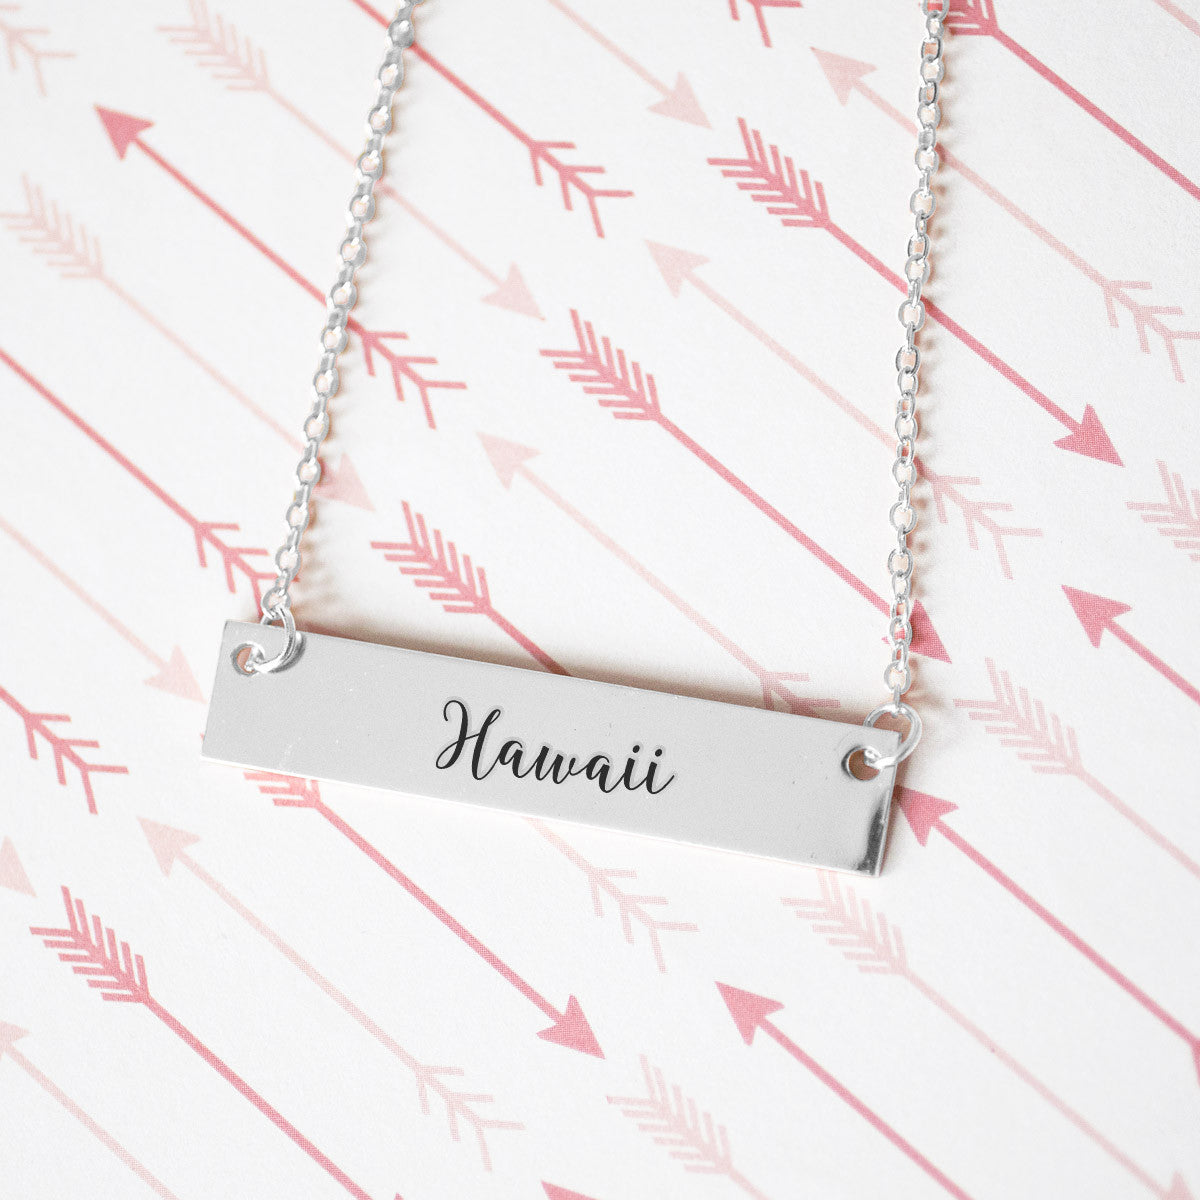 Hawaii Gold / Silver Bar Necklace